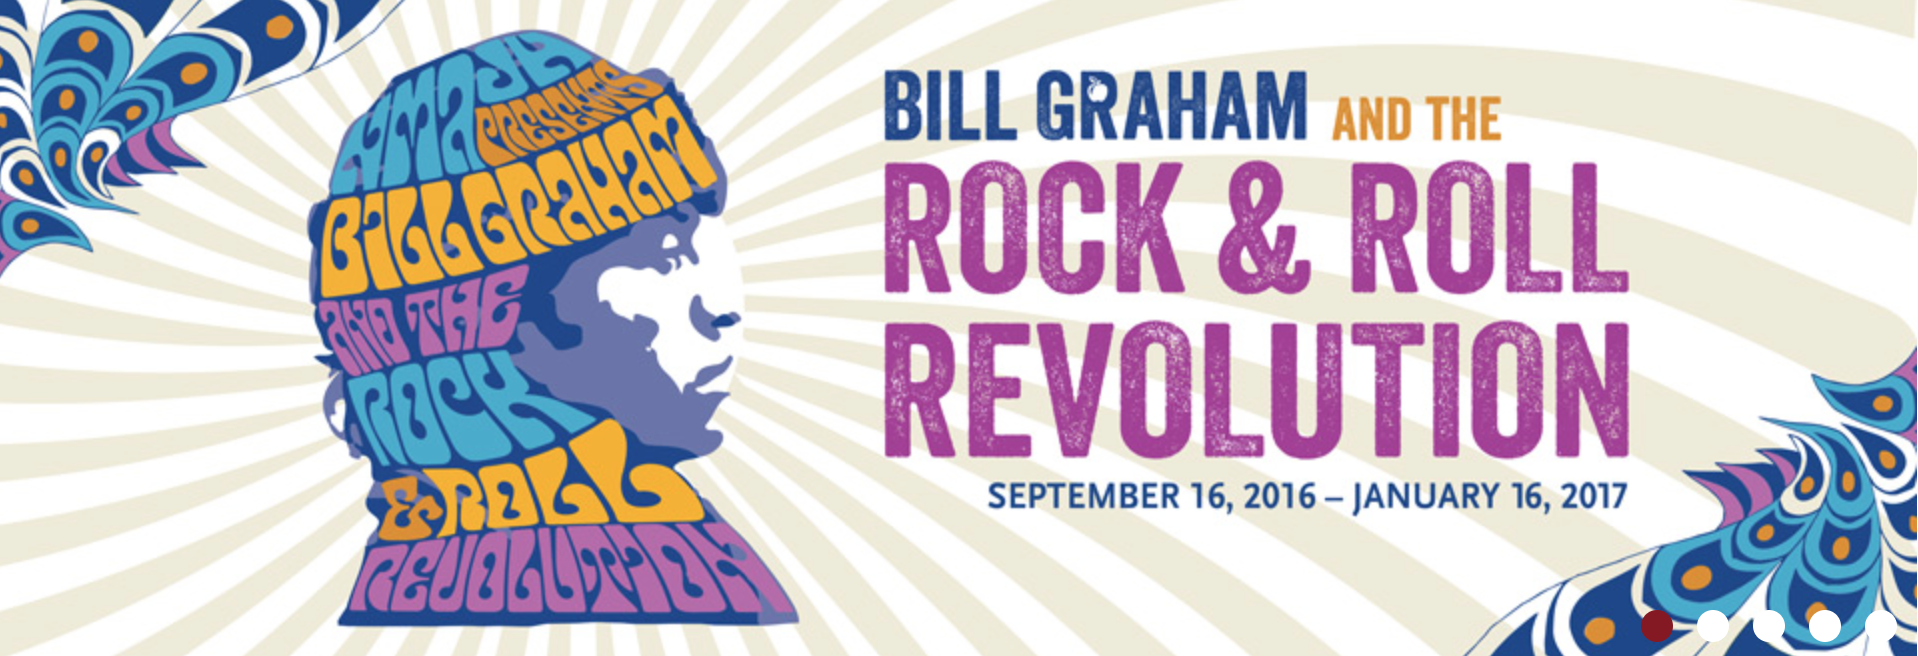 bill-graham-exhibit-at-american-jewish-museum-2016